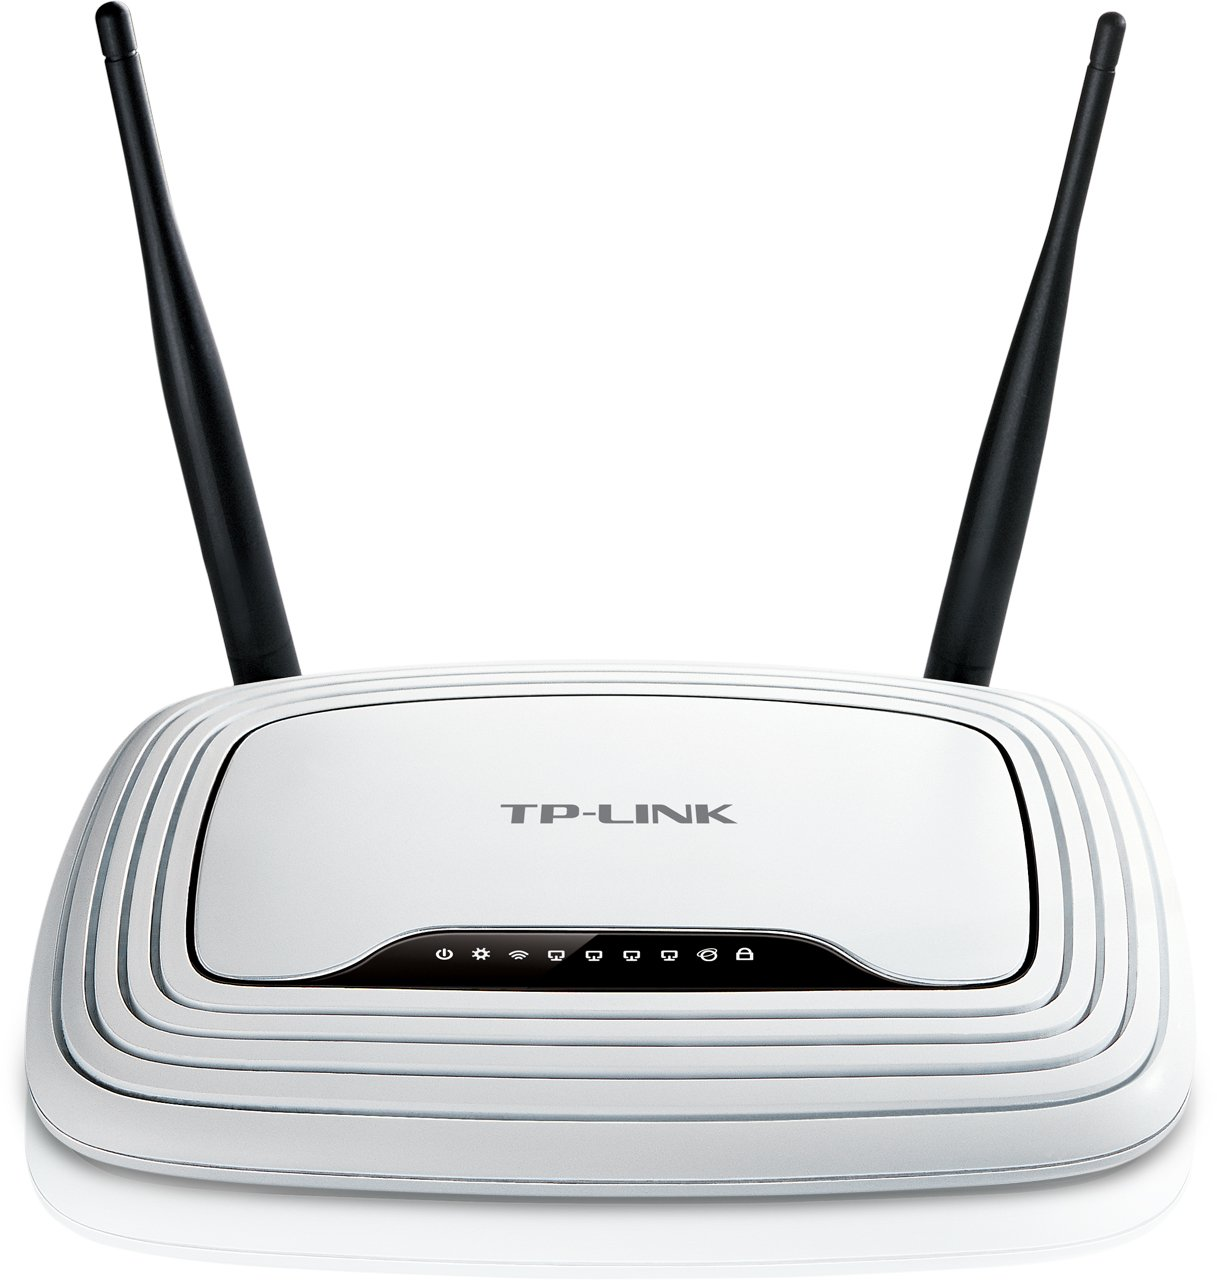 TP-LINK TL-WR841N Wireless N300 Home Router, 300Mpbs, IP QoS, WPS Button $25.99